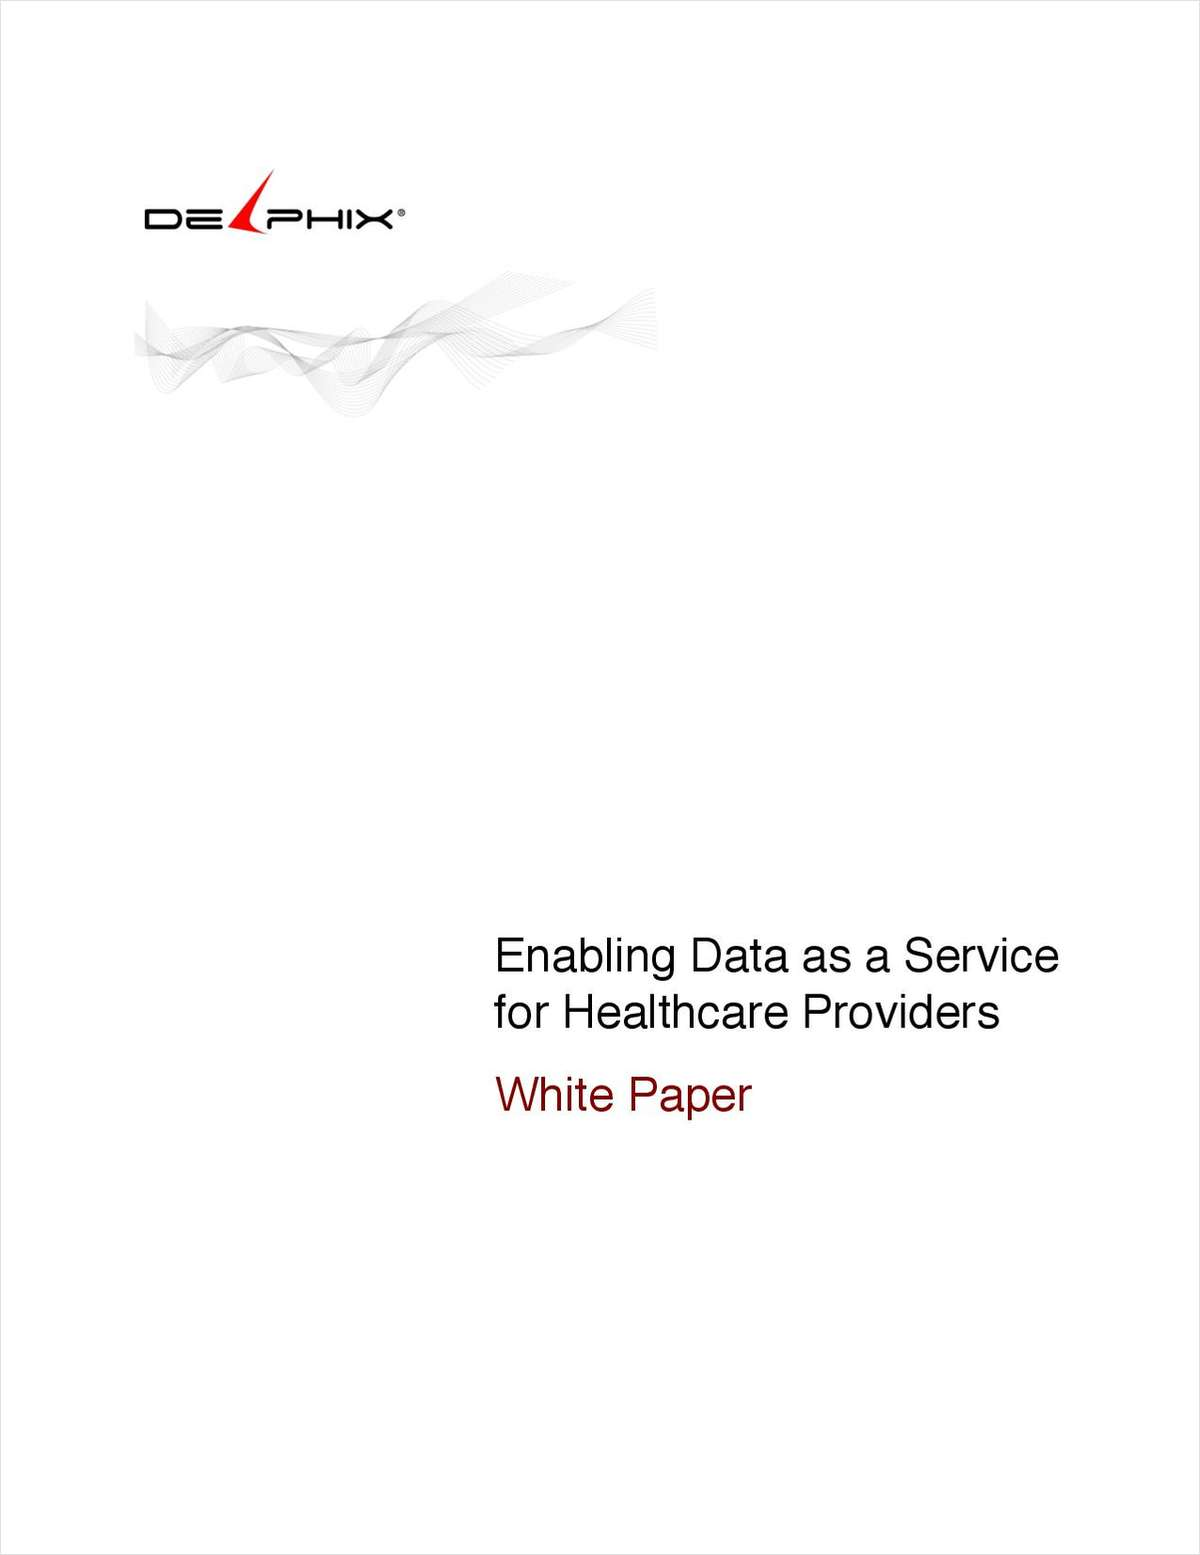 Enabling Data as a Service for Healthcare Providers